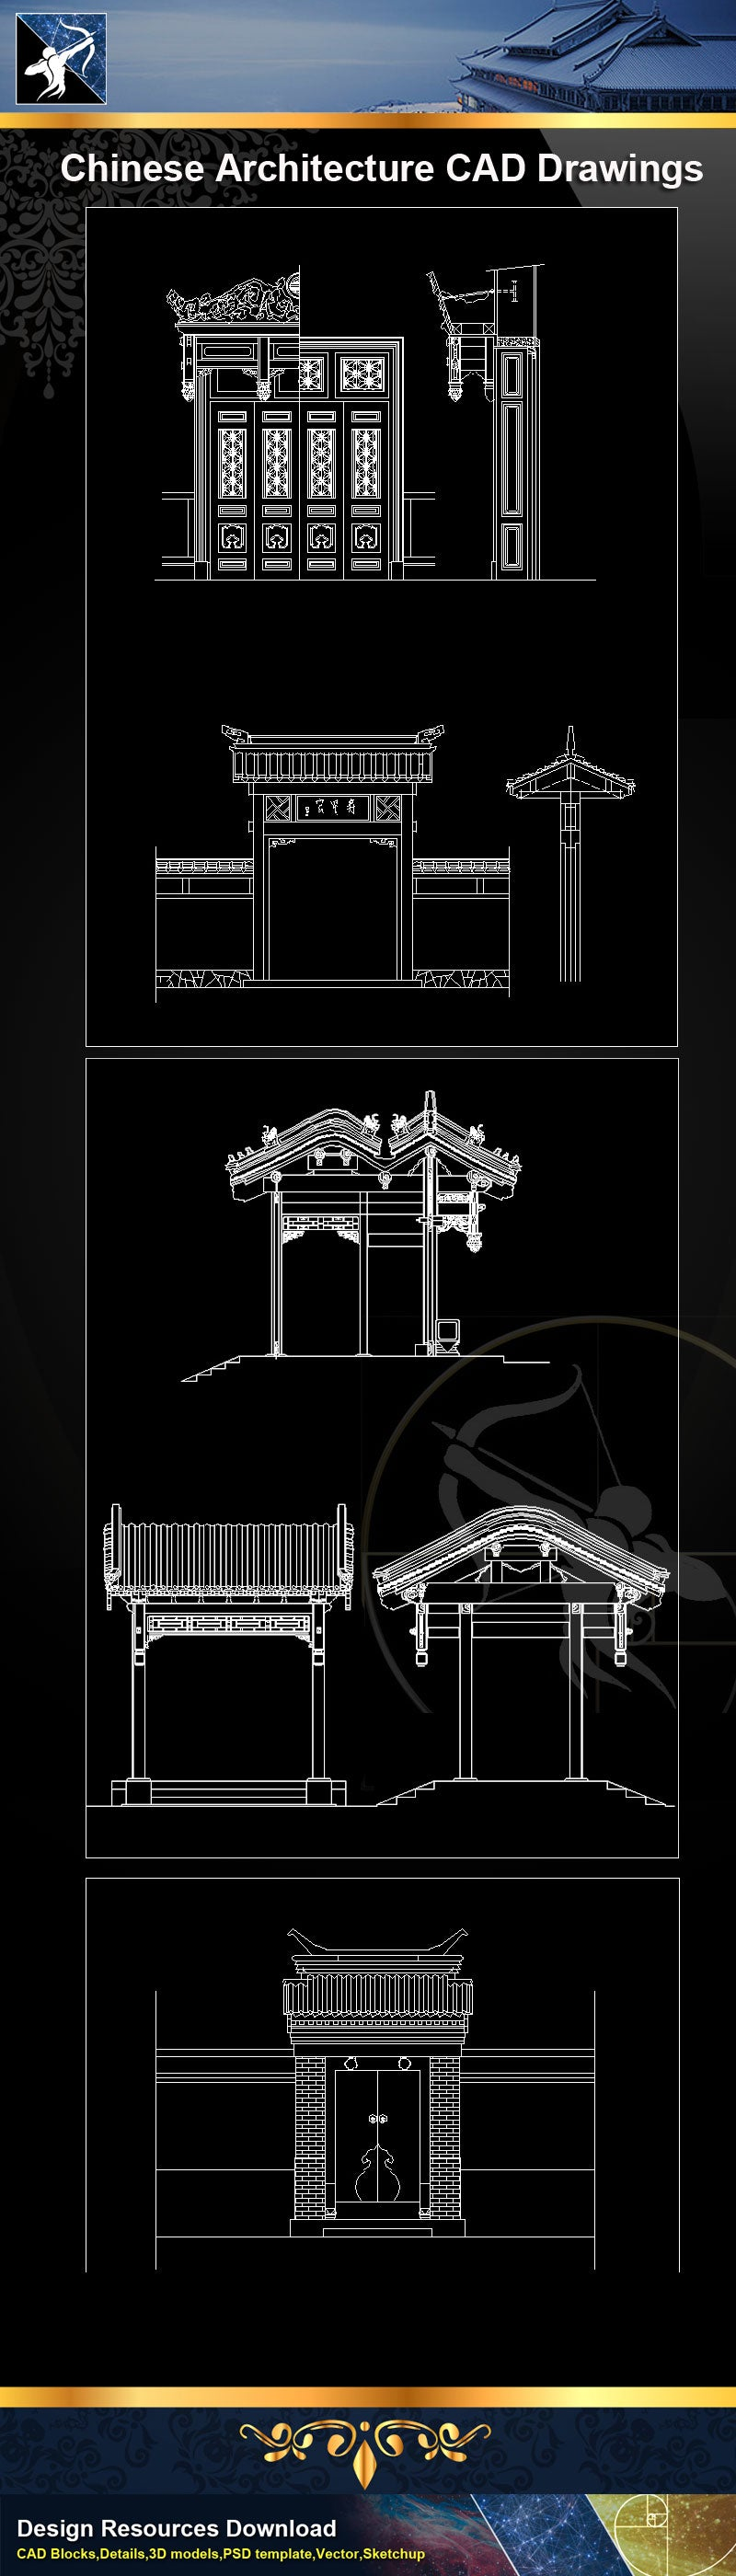 Chinese Architecture Drawing|Chinese Temple|Chinese Tower|Chinese building elevation|Chinese Traditional Architecture CAD Drawings